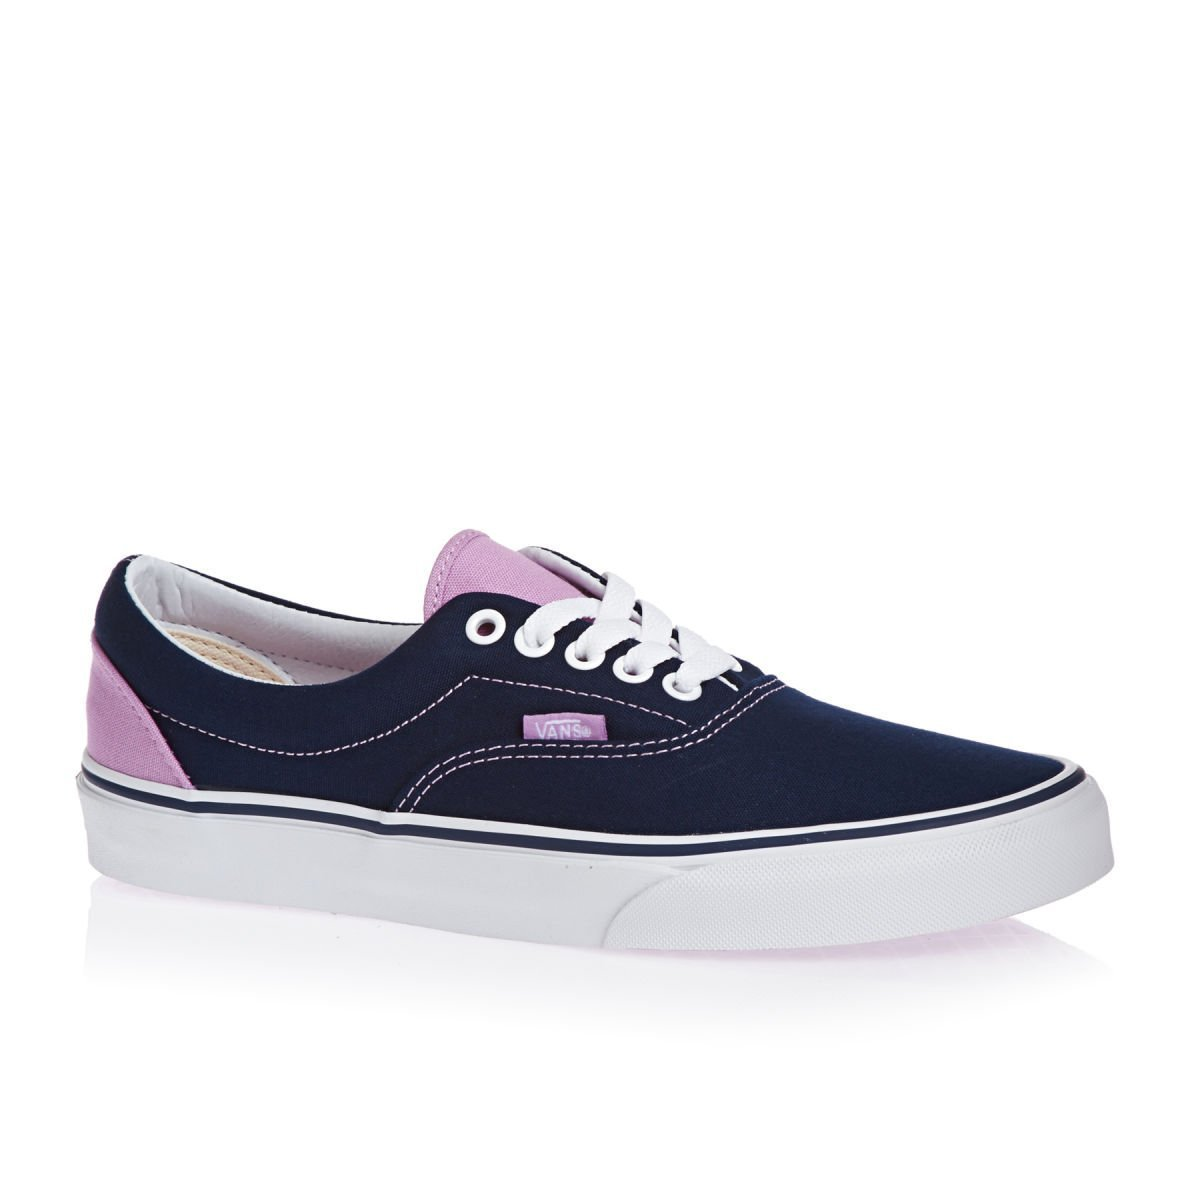 3b412b5a165f4d Get Quotations · Vans Kids Girl s Era (Little Kid Big Kid) (Heel Pop)  Eclipse